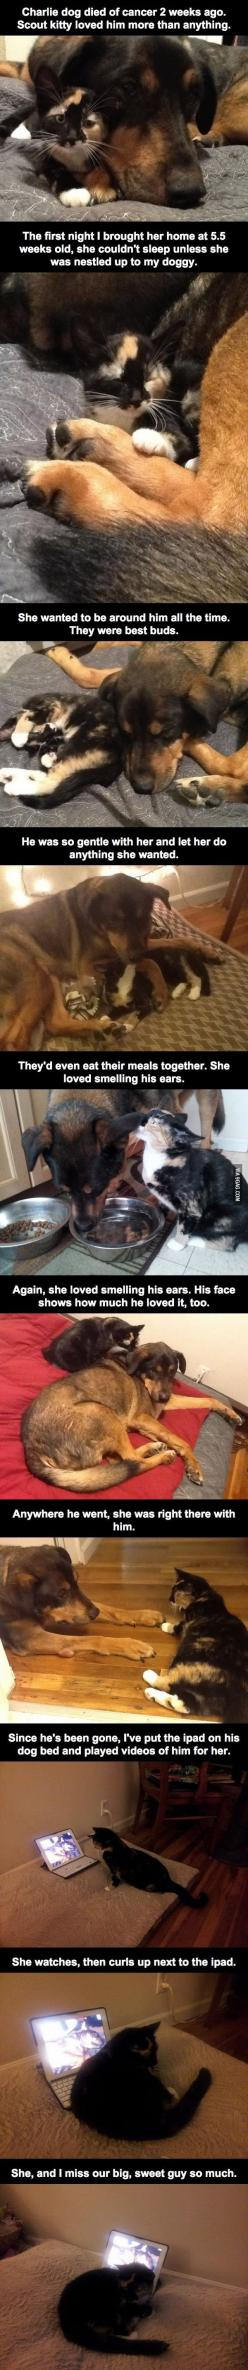 The feels...THE FEELS!!!!!!! D: *sniff* Now I need a new heart...because this one's broken!!! D:   His Dog Died Of Cancer 2 Weeks Ago. The House Cat's Reaction Was Heartbreaking.: Dogs And Cats, Animals ️, Heart Breaks, Kitty Feels, House Cat S, Anima